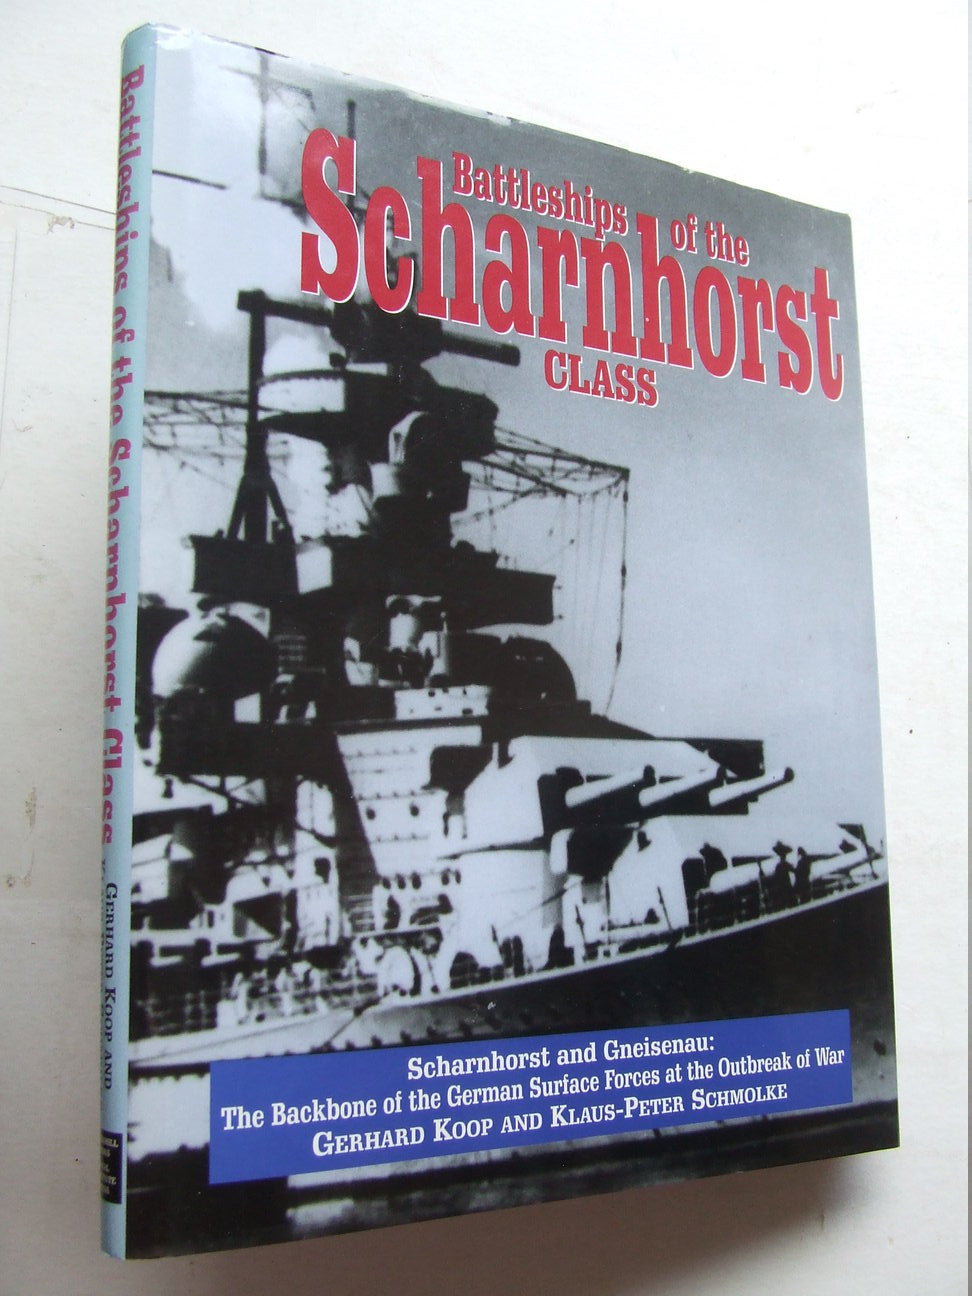 Battleships of the Scharnhorst Class -   Scharnhorst and Gneisenau